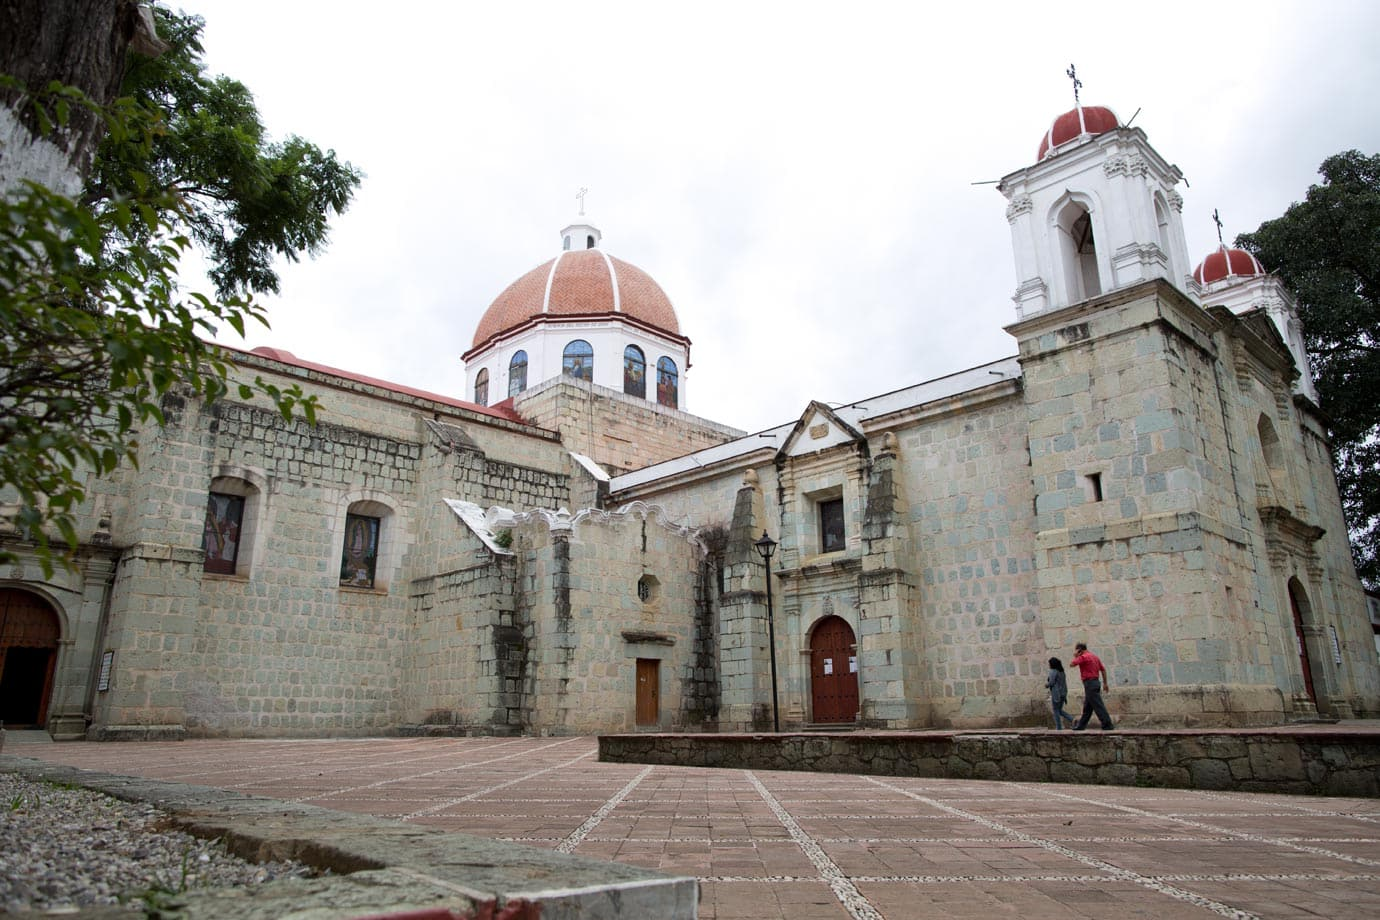 A church just off the Central Plaza